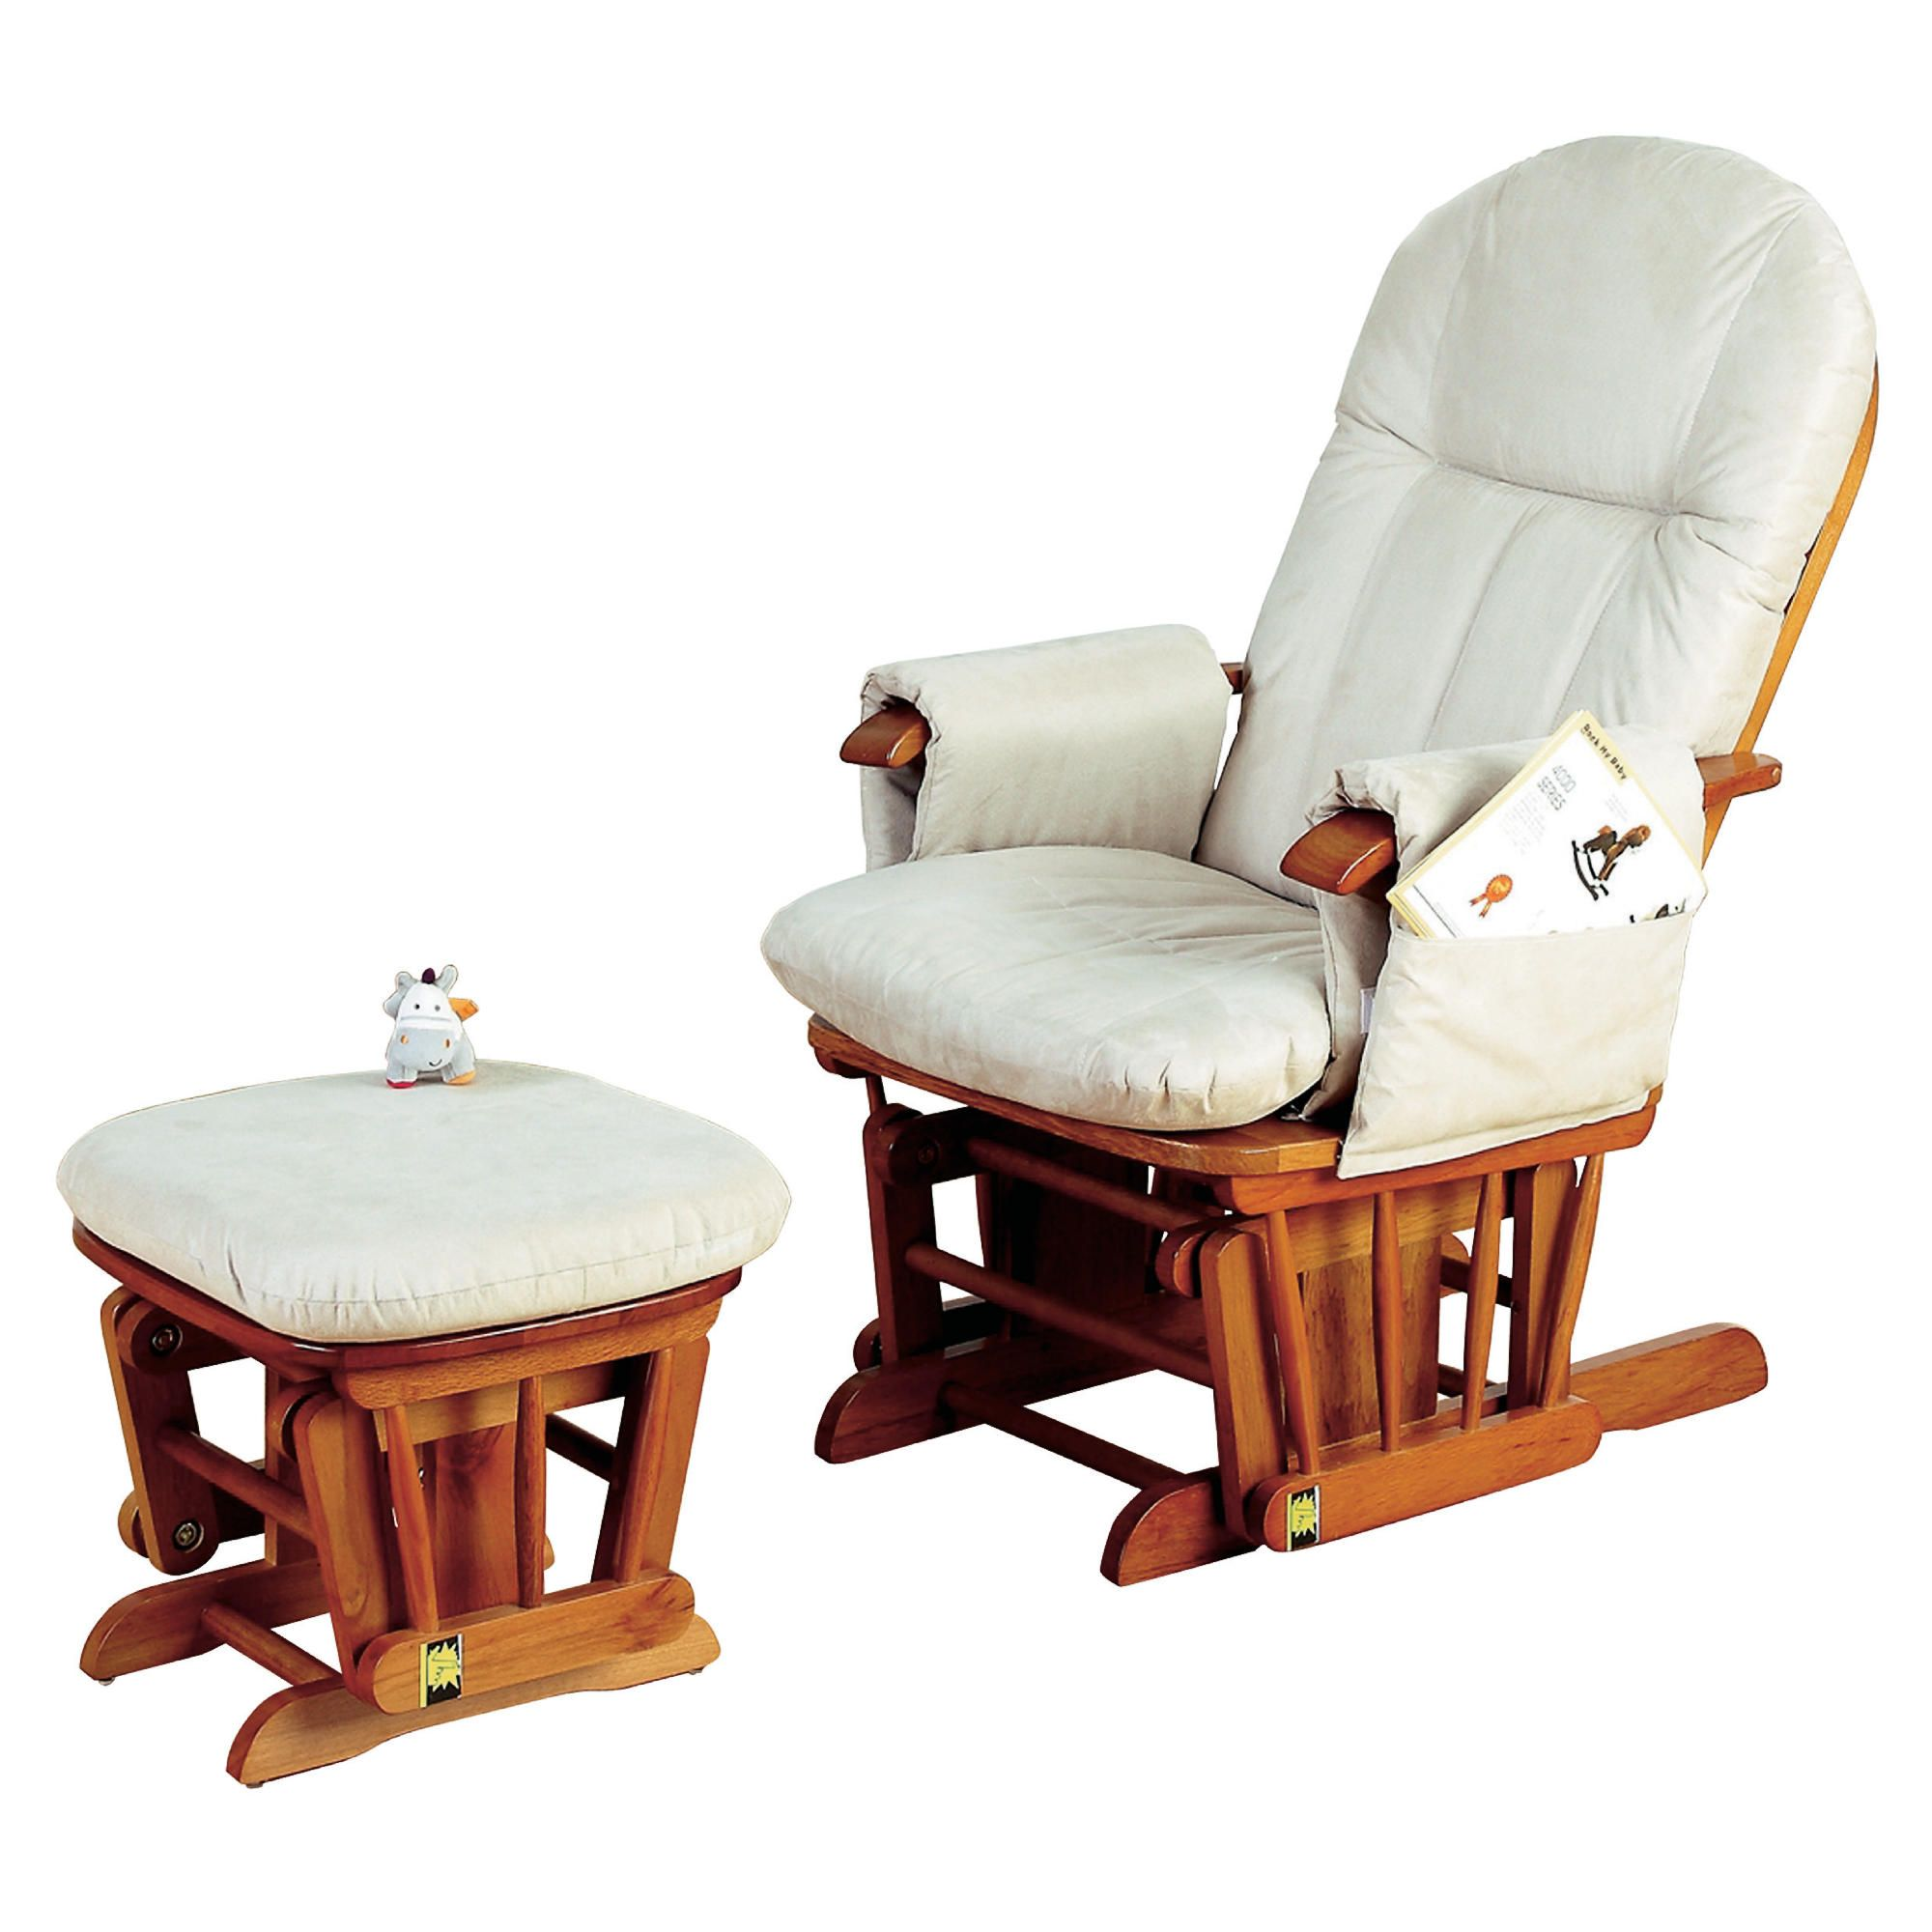 Tutti Bambini Gc35 Reclinable Glider ChairandStool Antique Pine